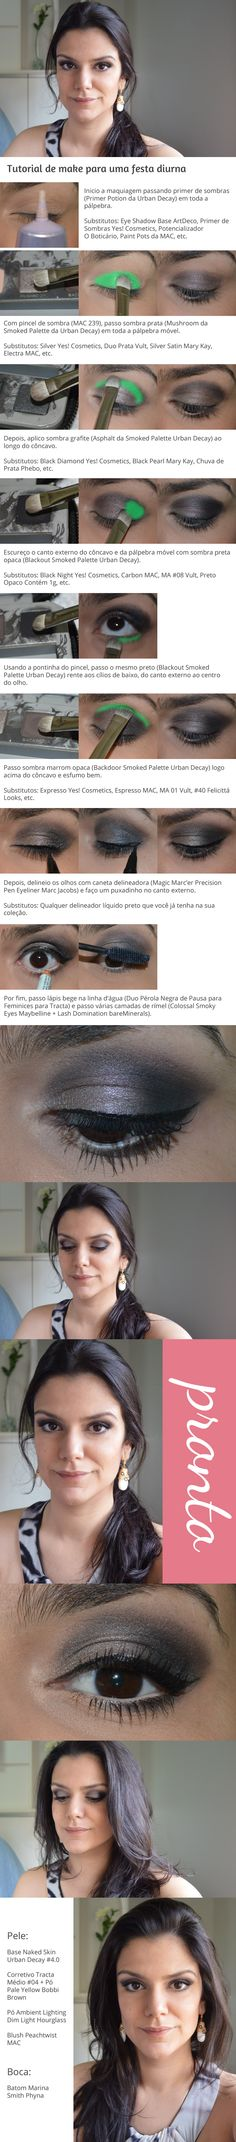 Tutorial: Make para festa diurna http://www.2beauty.com.br/blog/2014/07/18/tutorial-make-para-festa-diurna/ #tutorial #maquiagem